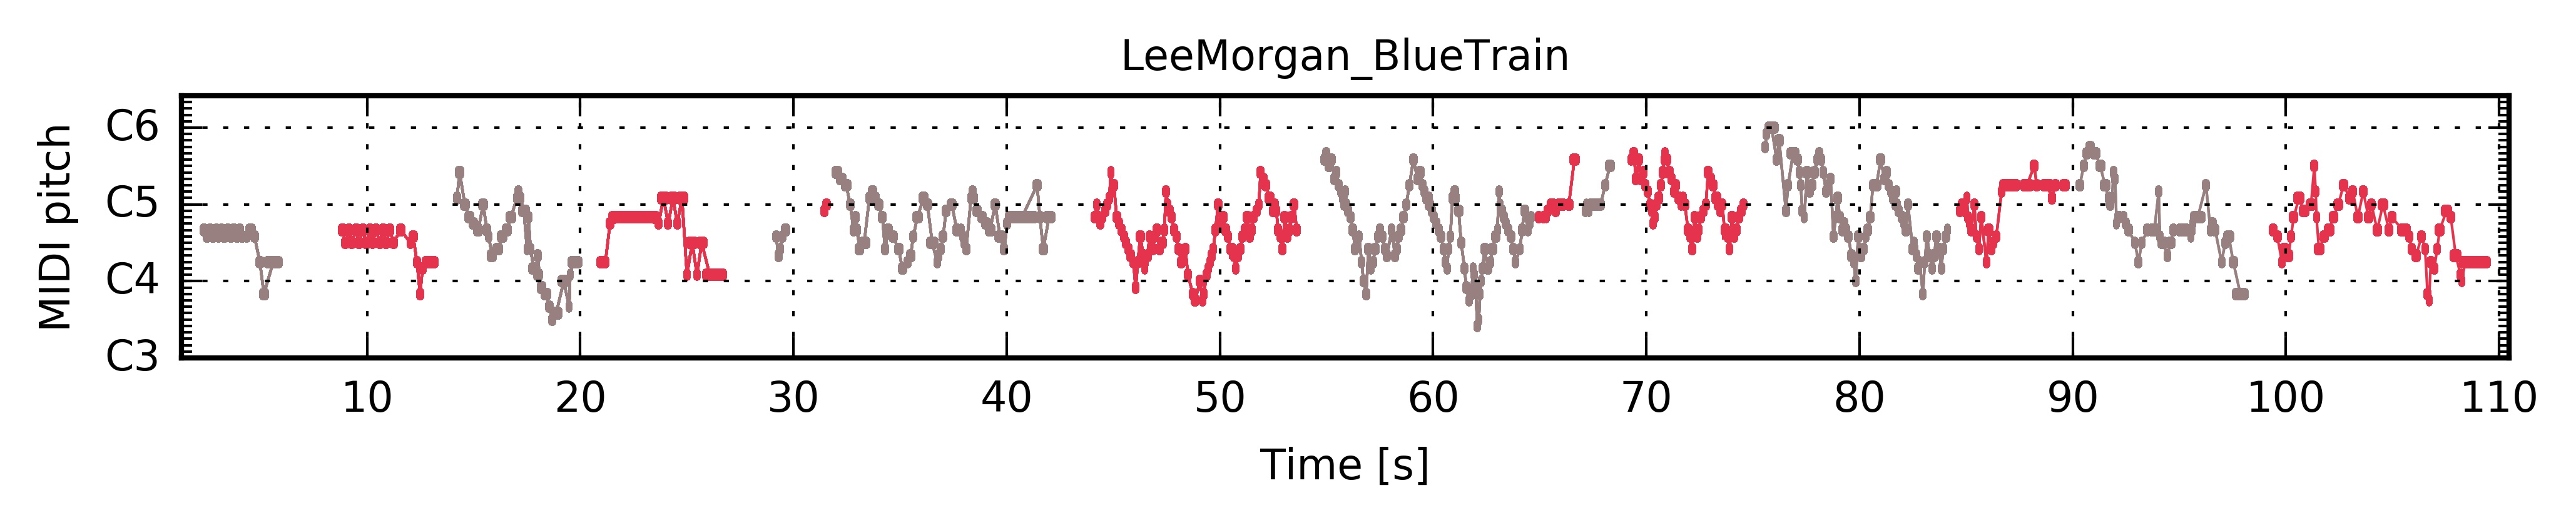 ../../_images/PianoRoll_LeeMorgan_BlueTrain.jpg